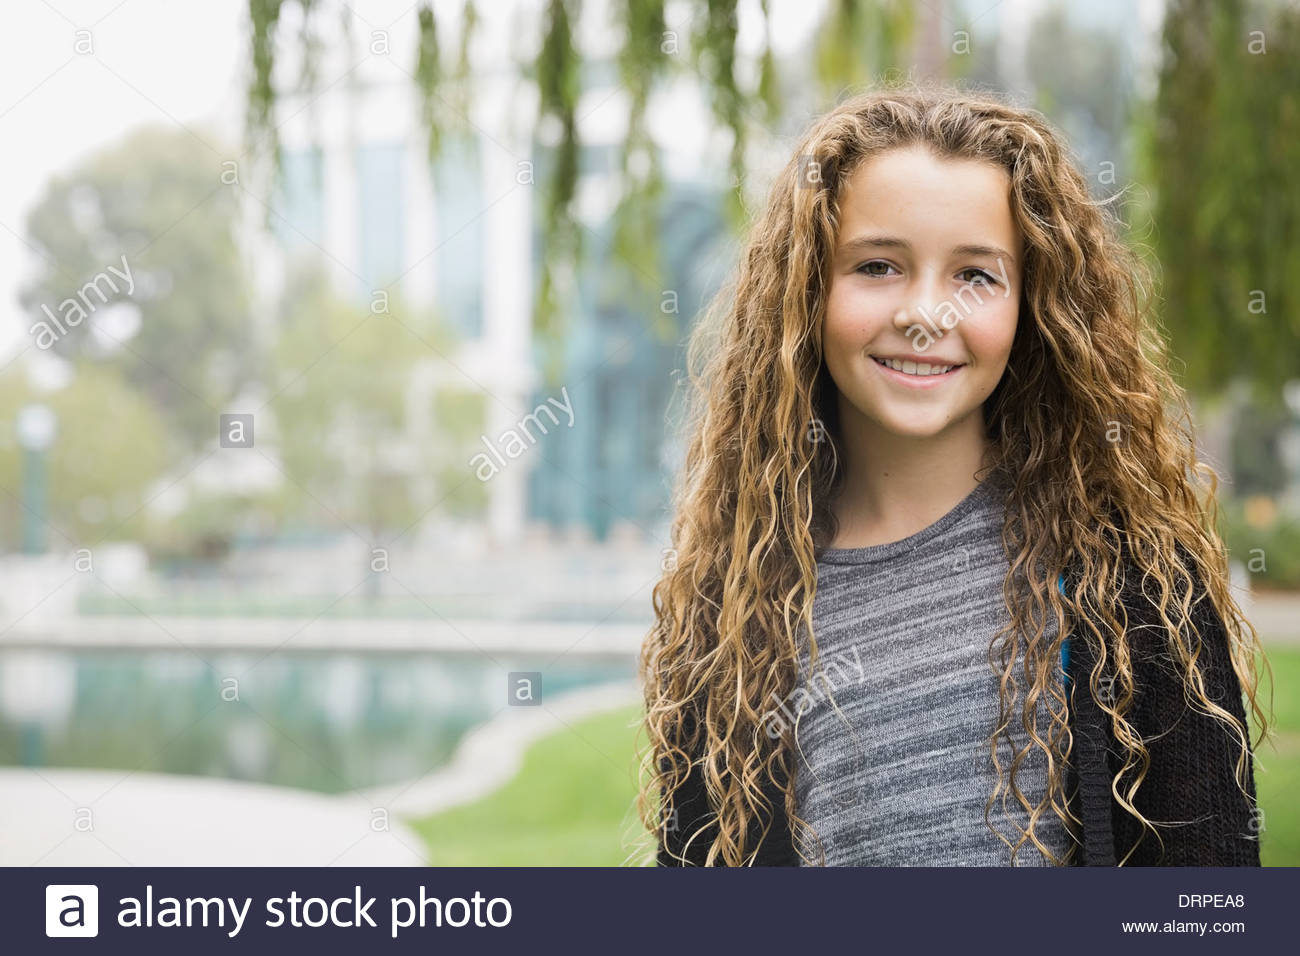 Portrait of smiling girl in park - Stock Image